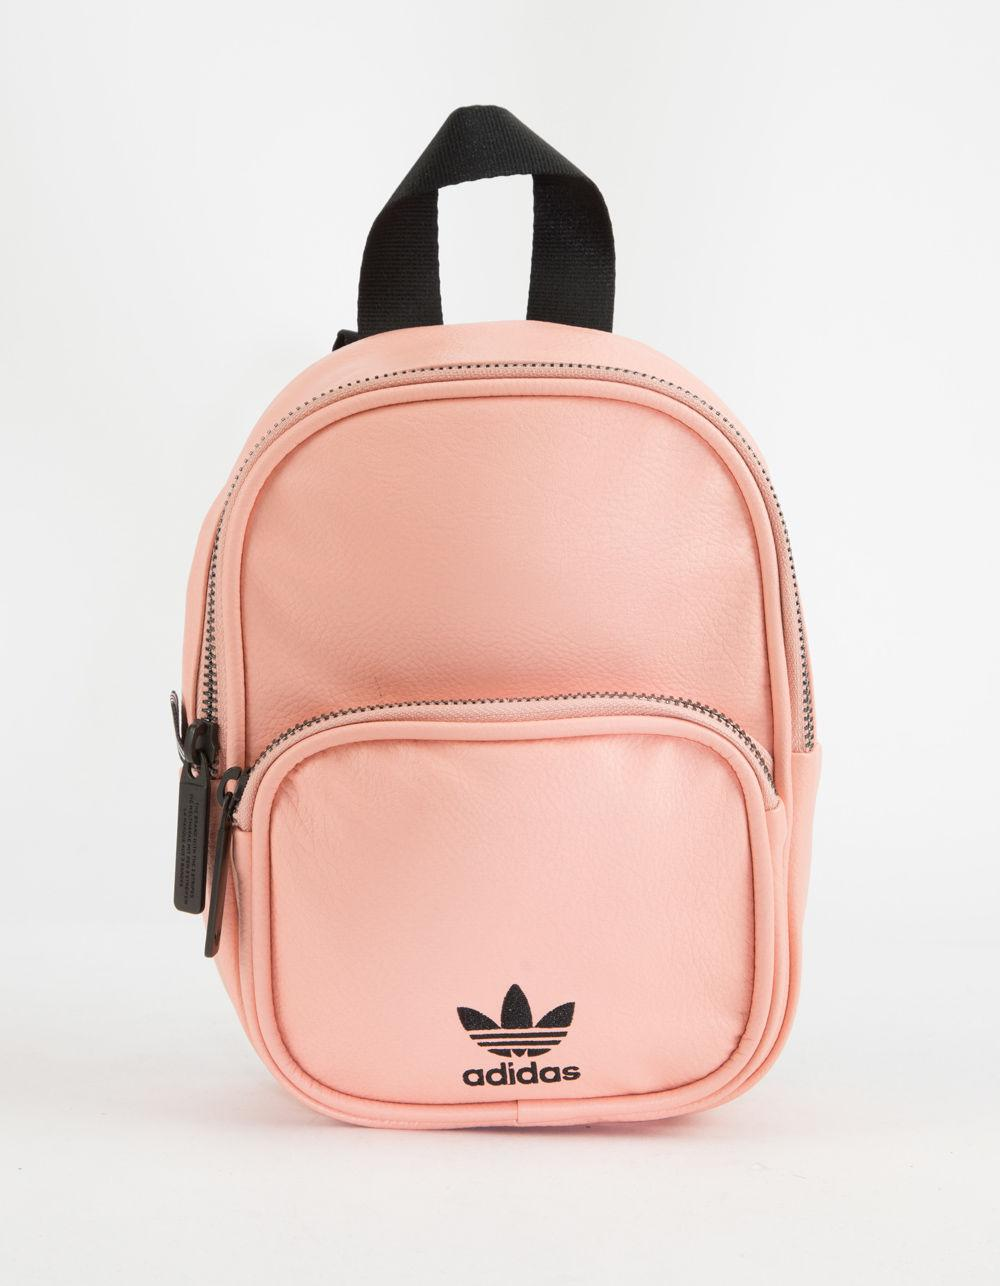 15c7d8039b9d Adidas - Originals Faux Leather Pink Mini Backpack - Lyst. View fullscreen